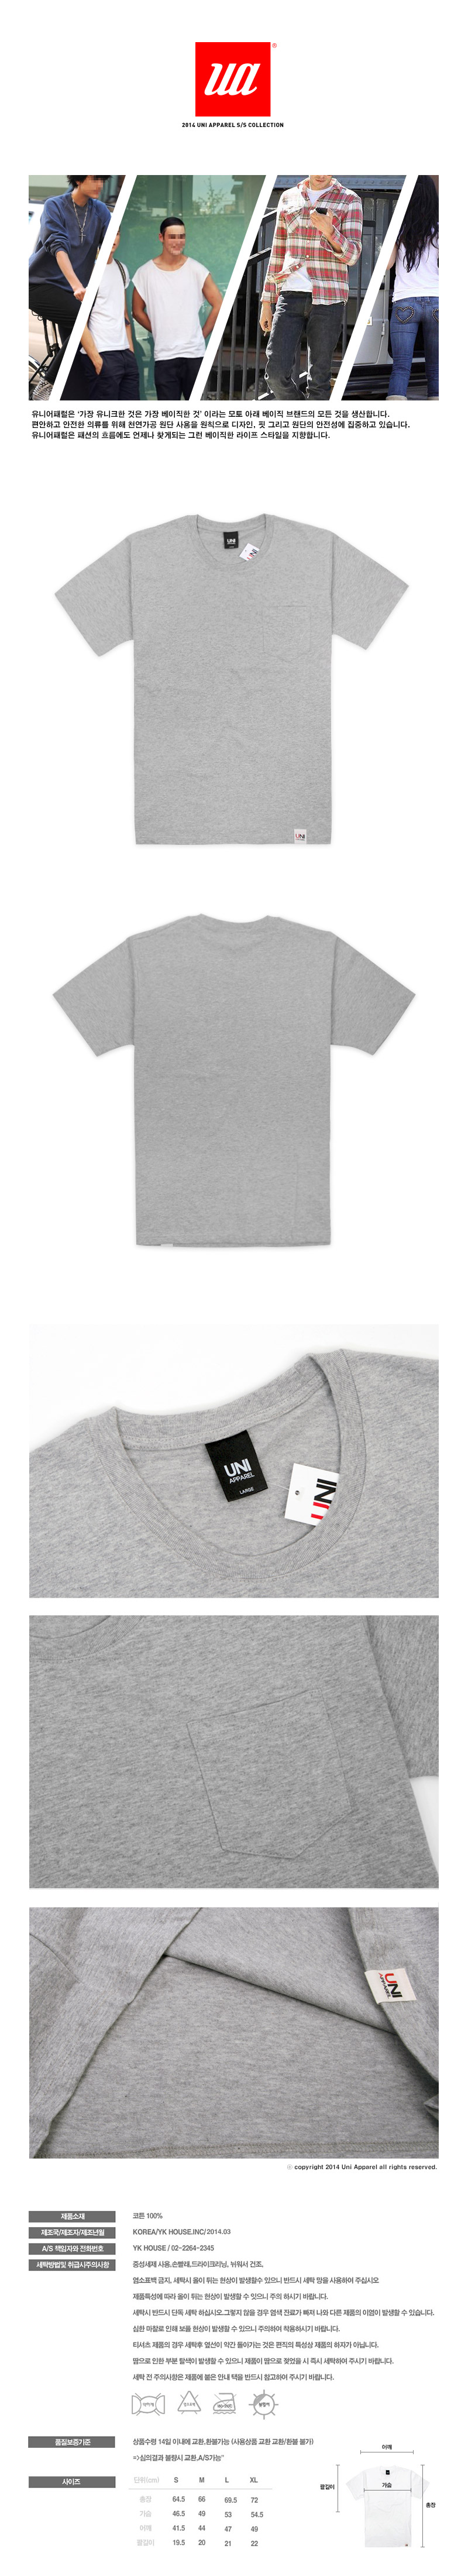 basic-pocket-short-tee-(gray).jpg